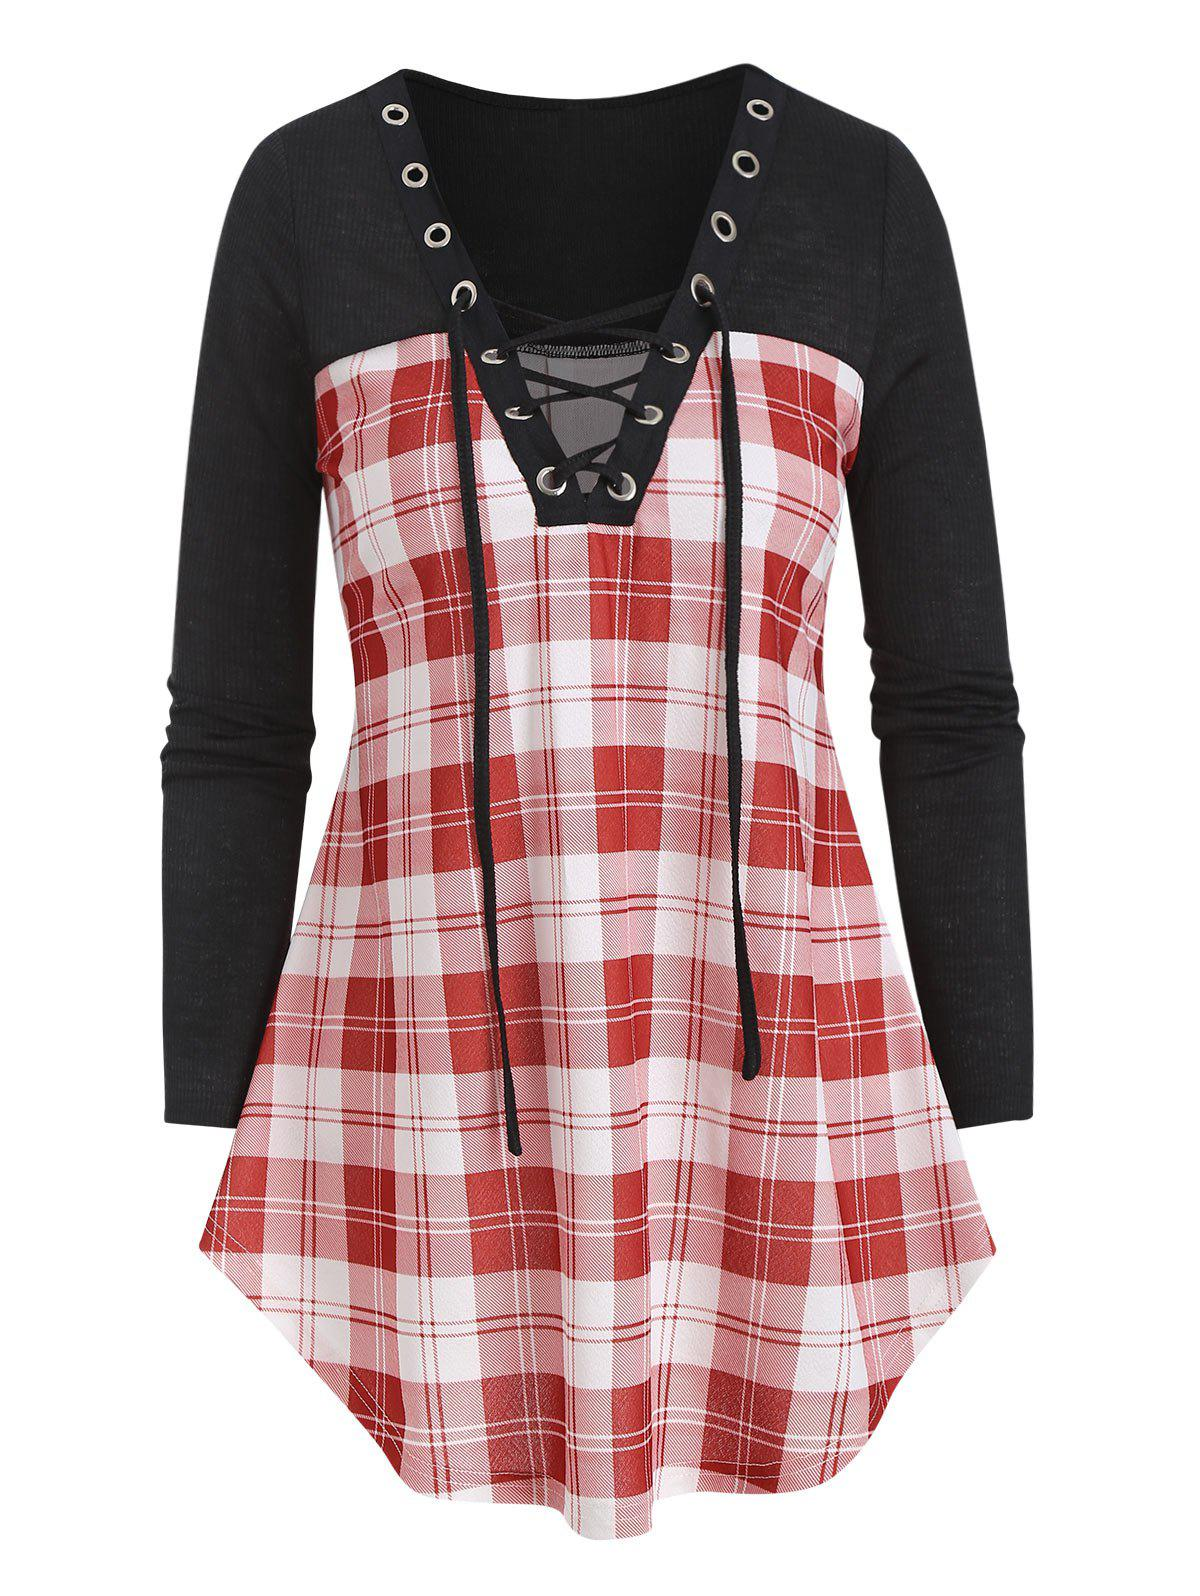 Buy Lace Up Plaid Patch Curved T Shirt